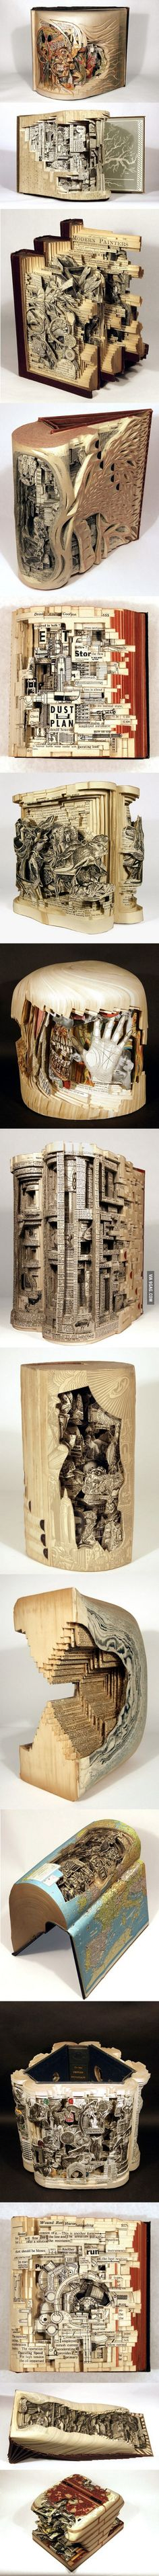 This Is A Clever Idea Take A Page From An Old Book And Find A - 21 incredible works art sculpted books